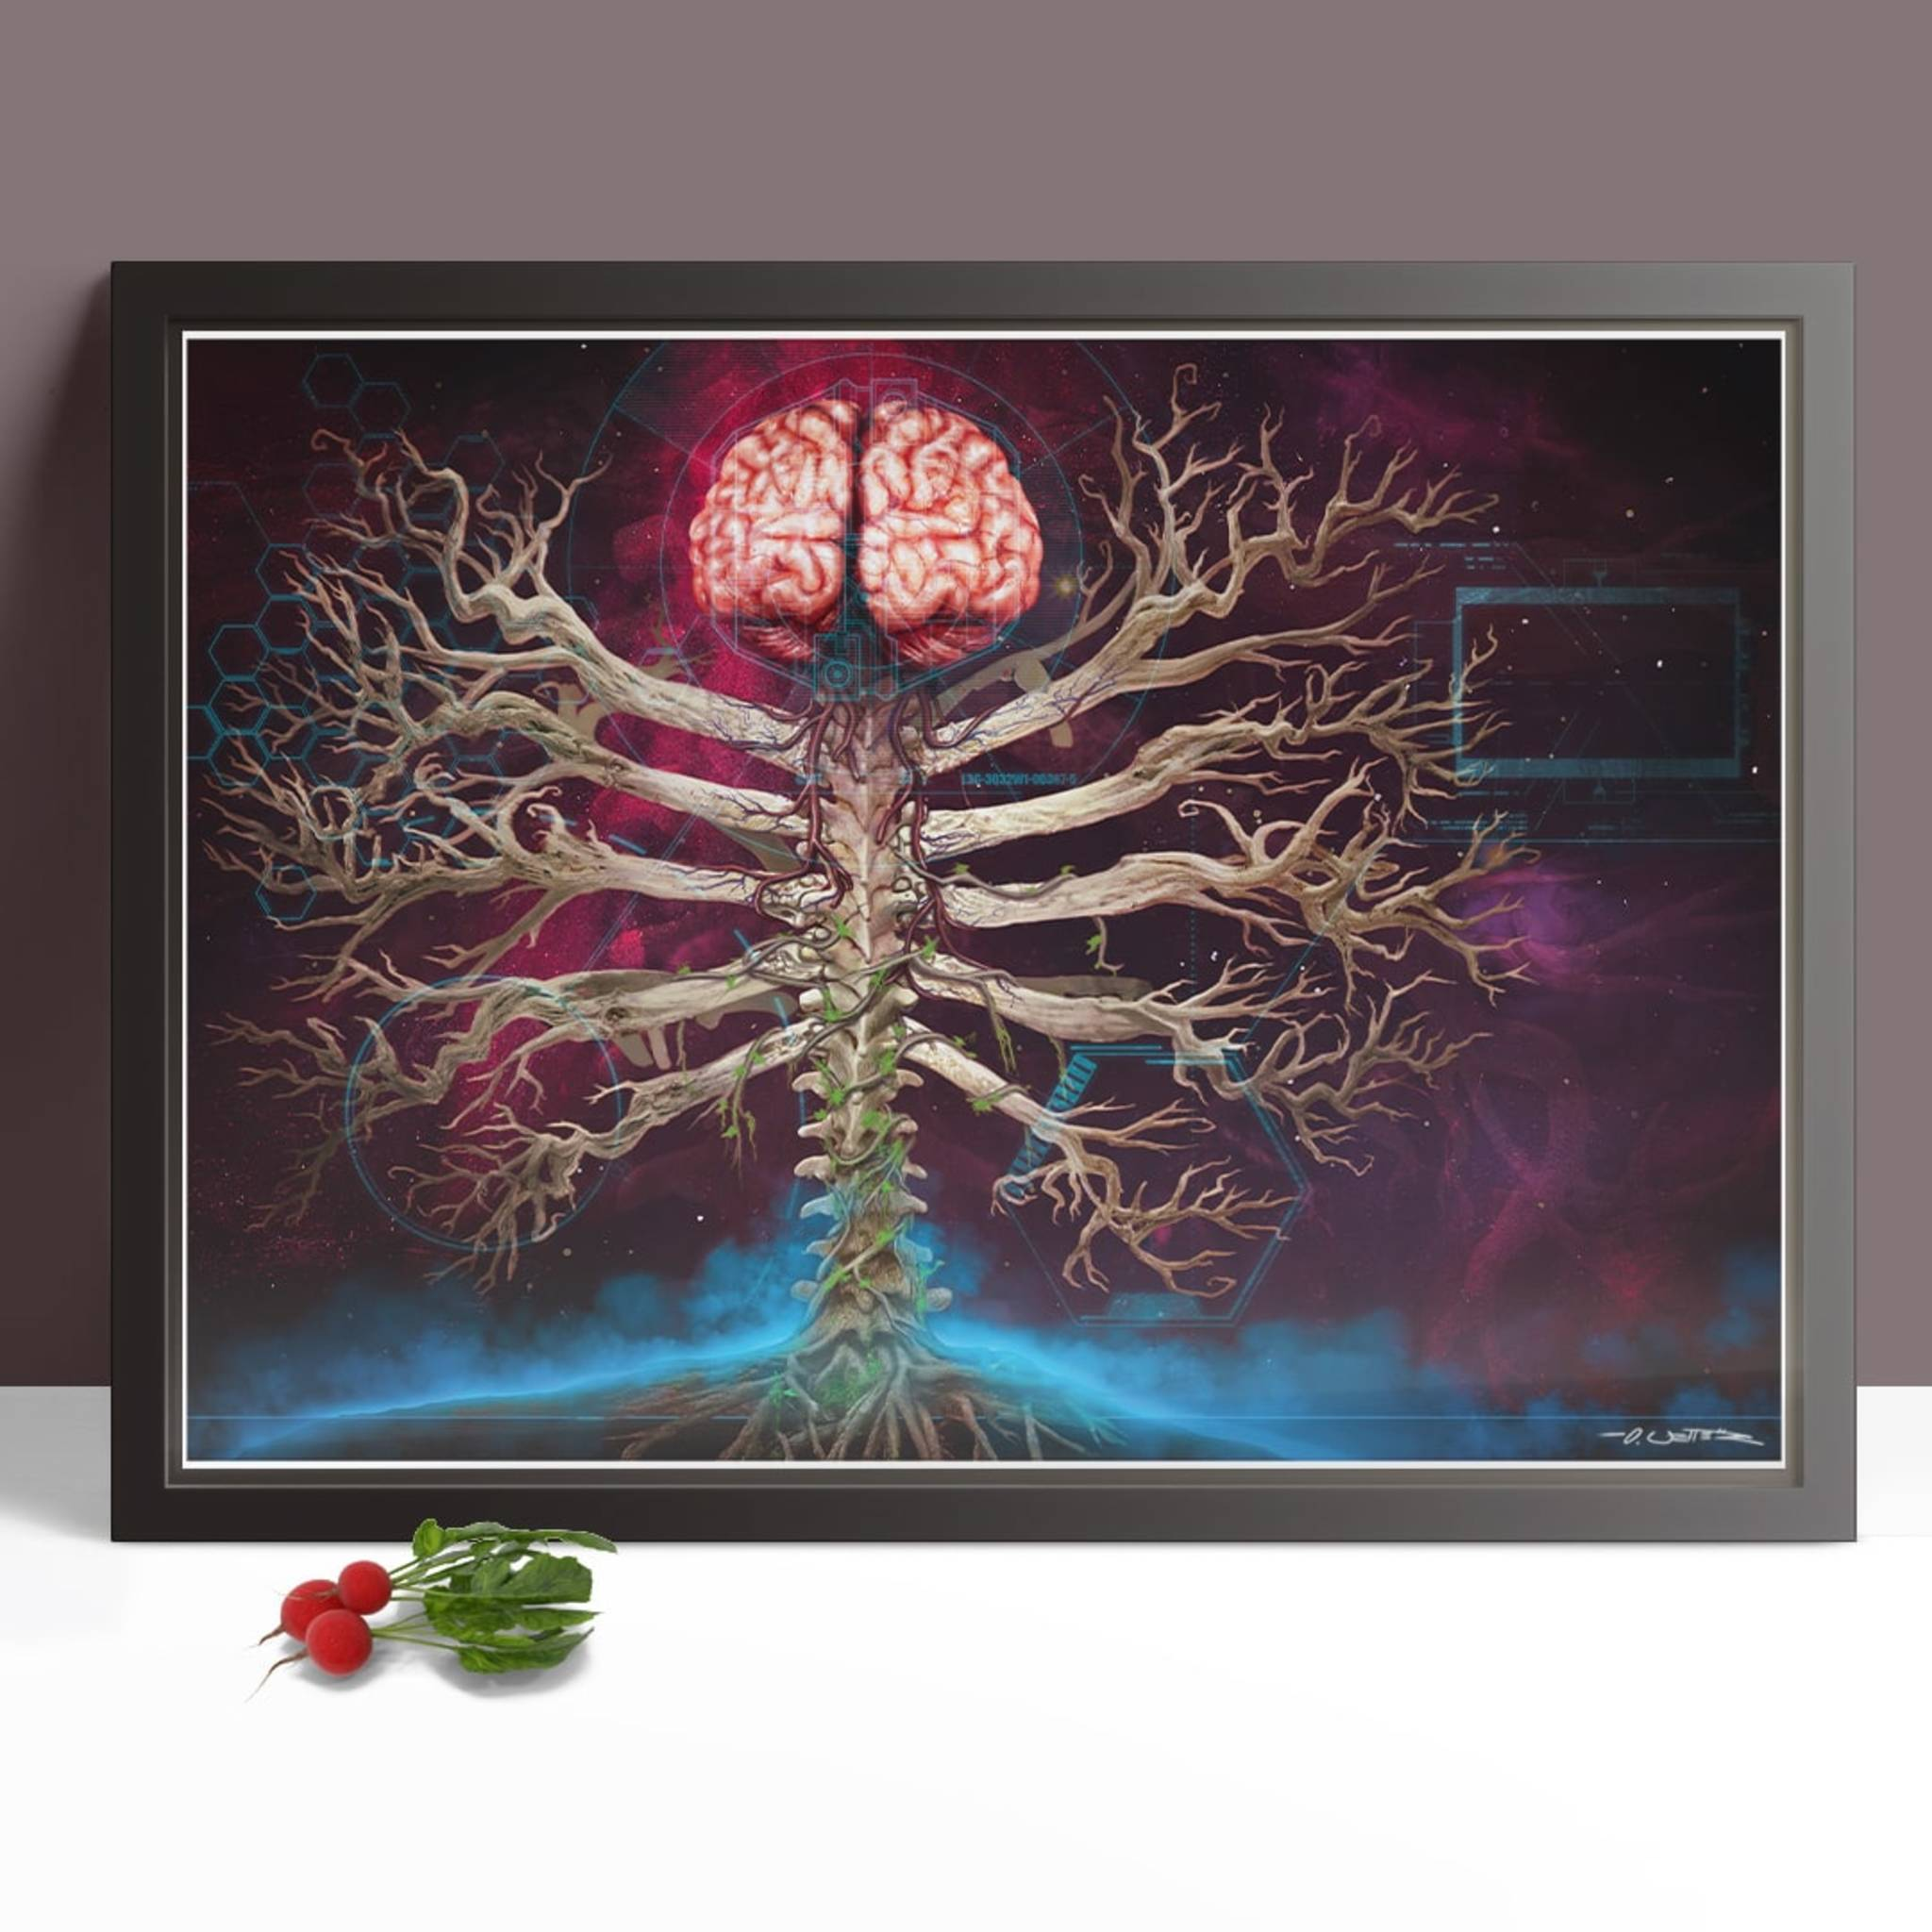 Mindsight art print framed